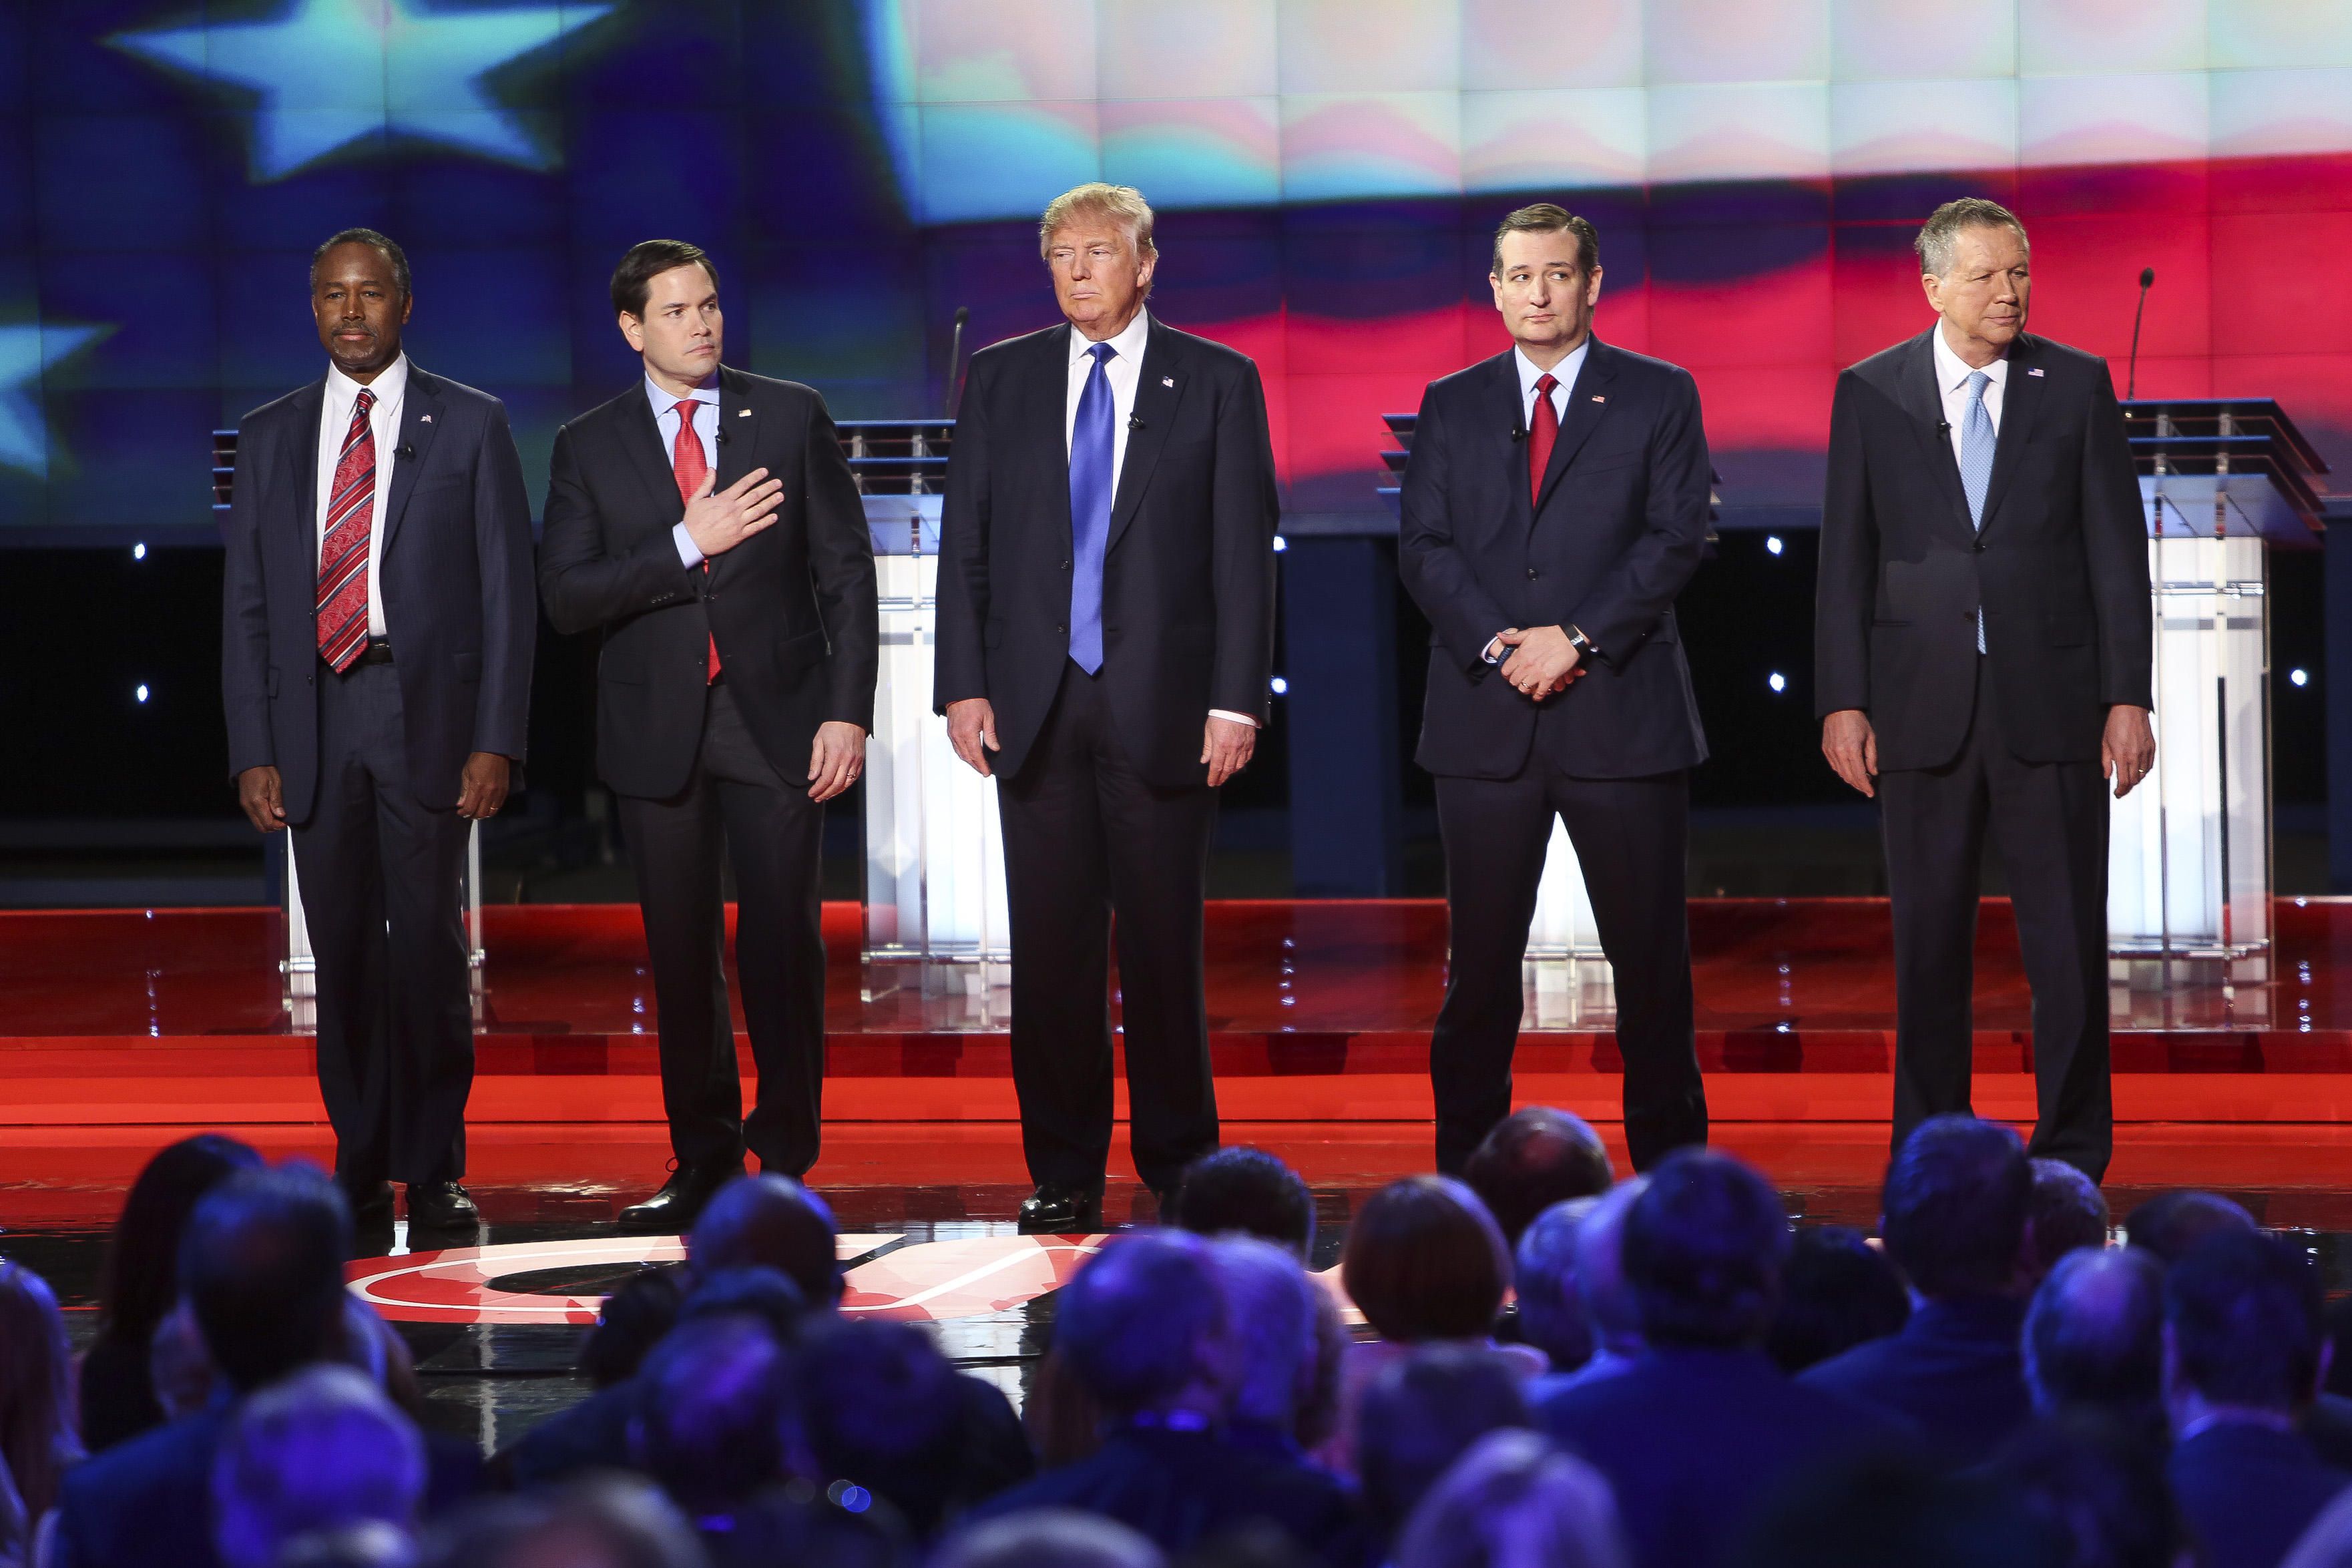 Presidential candidates Marco Rubio, Donald Trump, Ted Cruz and John Kasich and former candidate Ben Carson stand for the national anthem during the Republican Presidential Primary Debate at the University of Houston Thursday, Feb. 25, 2016.